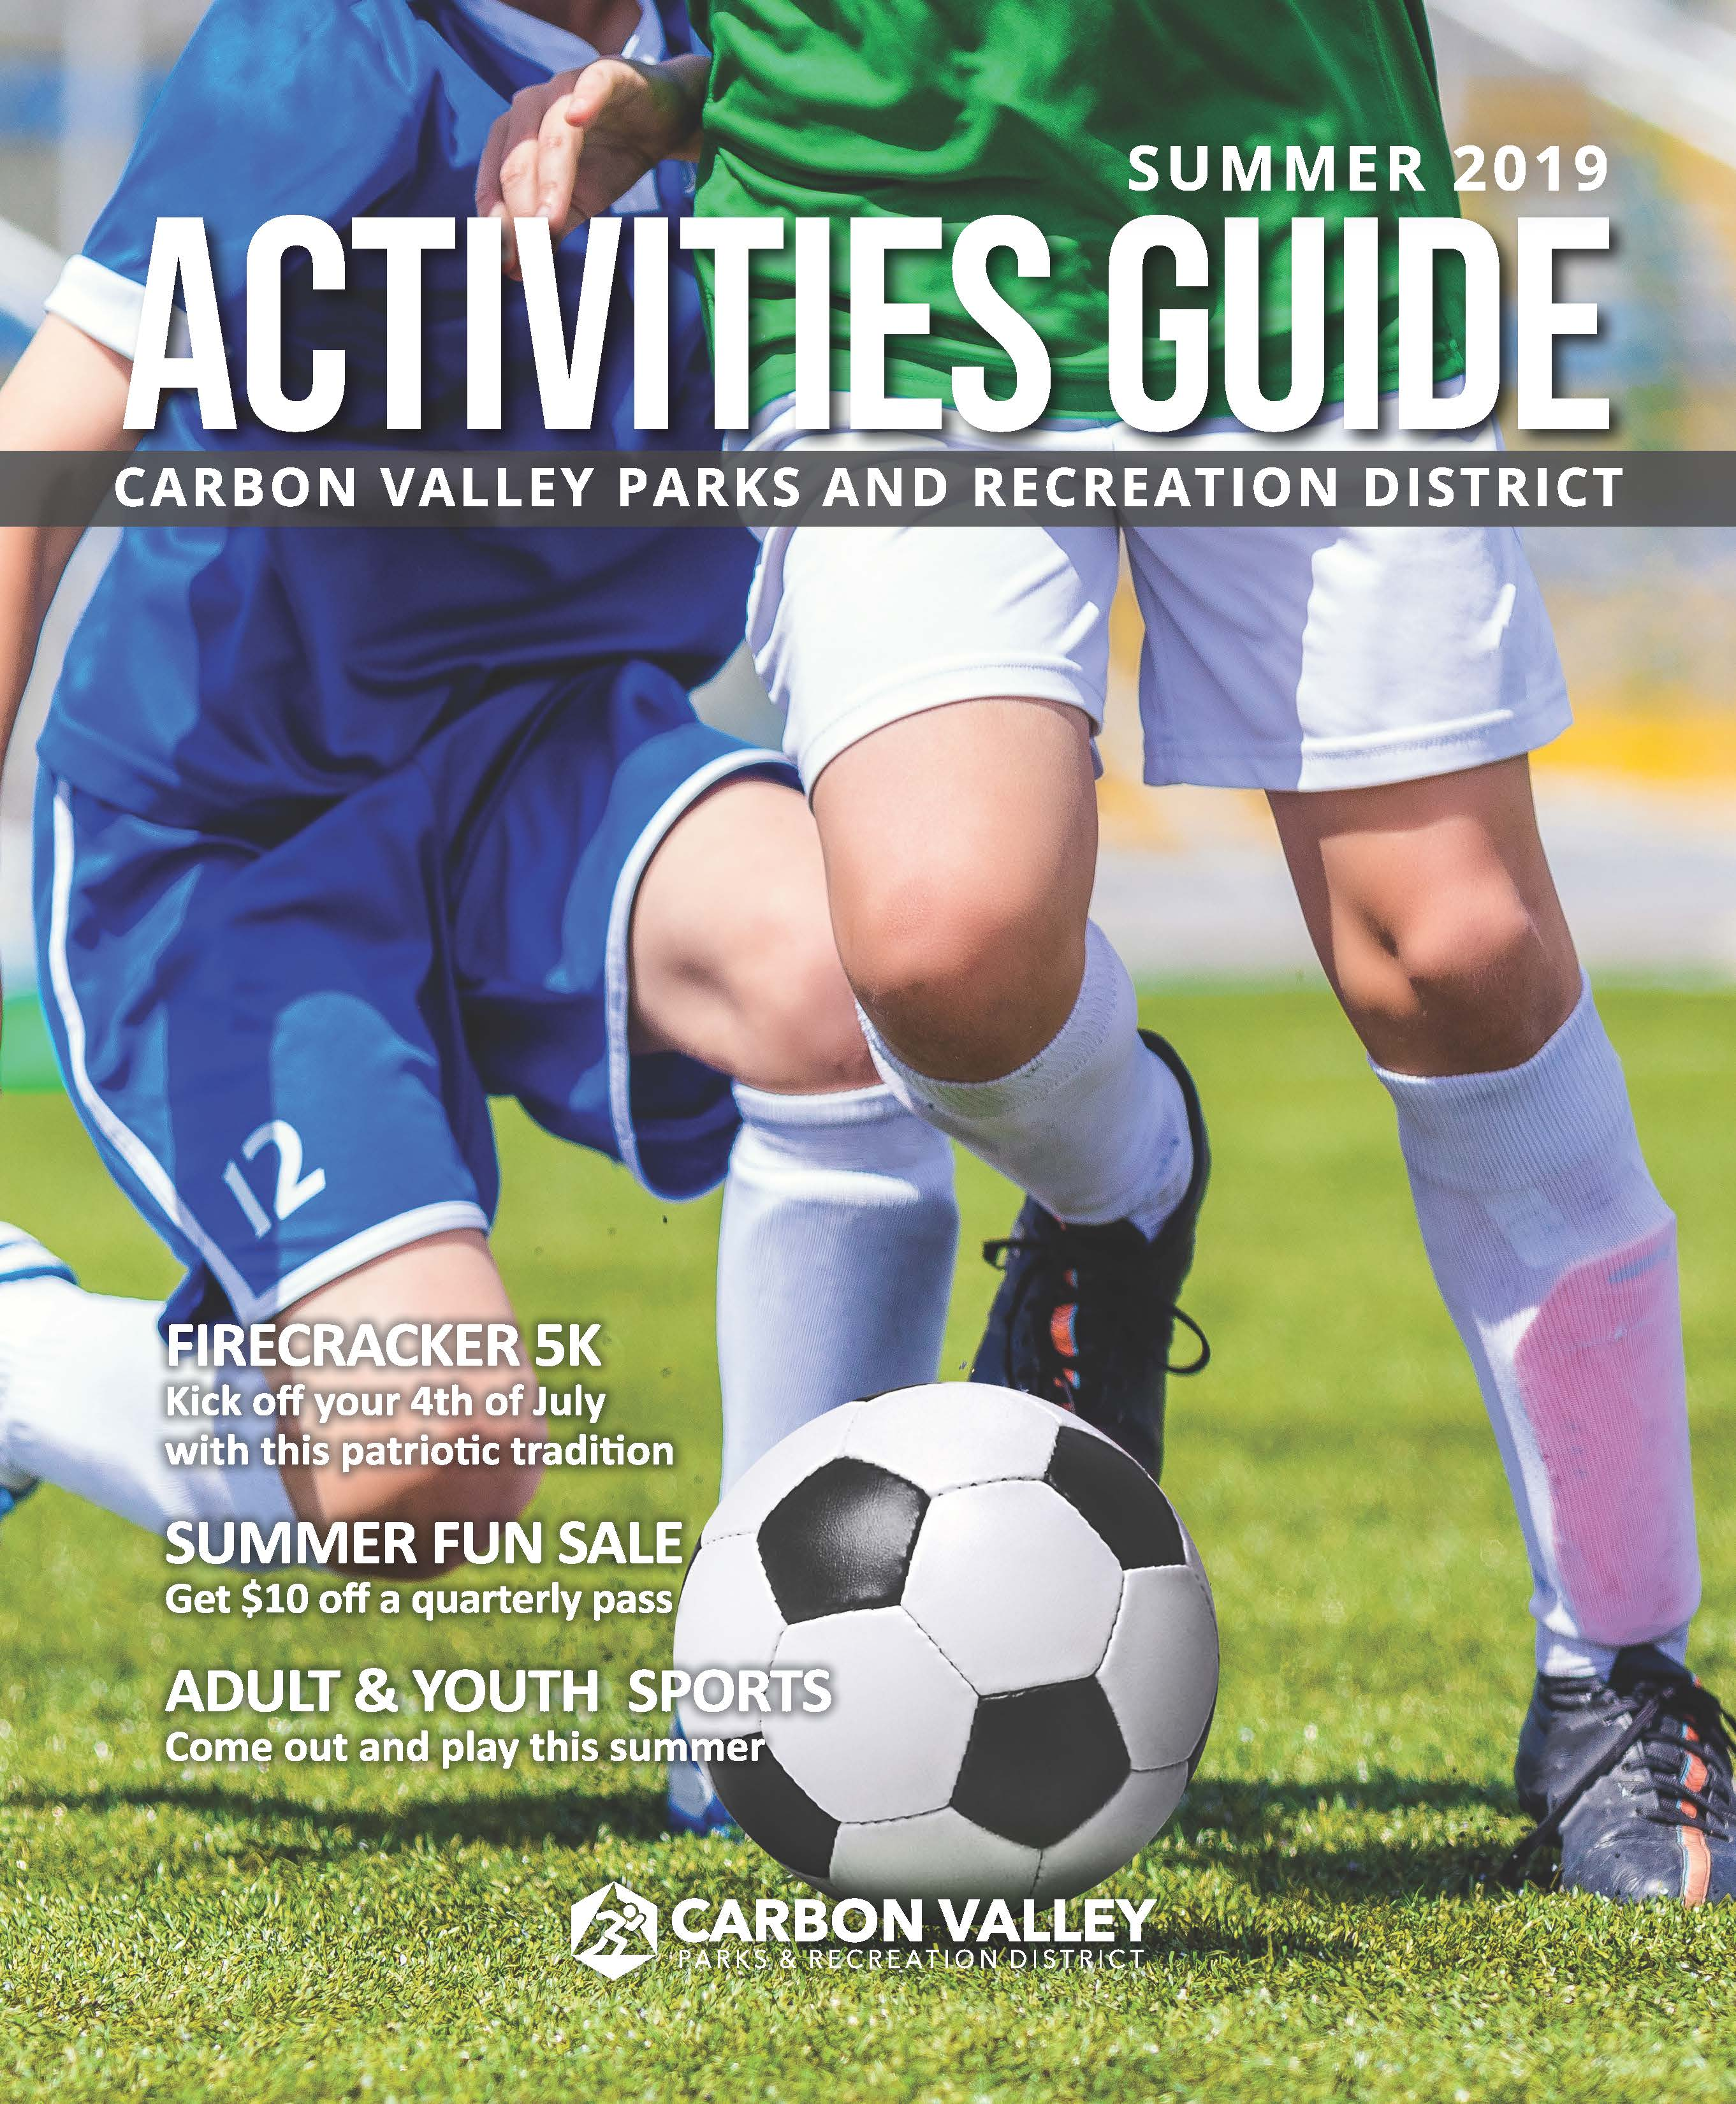 Summer 2019 Activities Guide